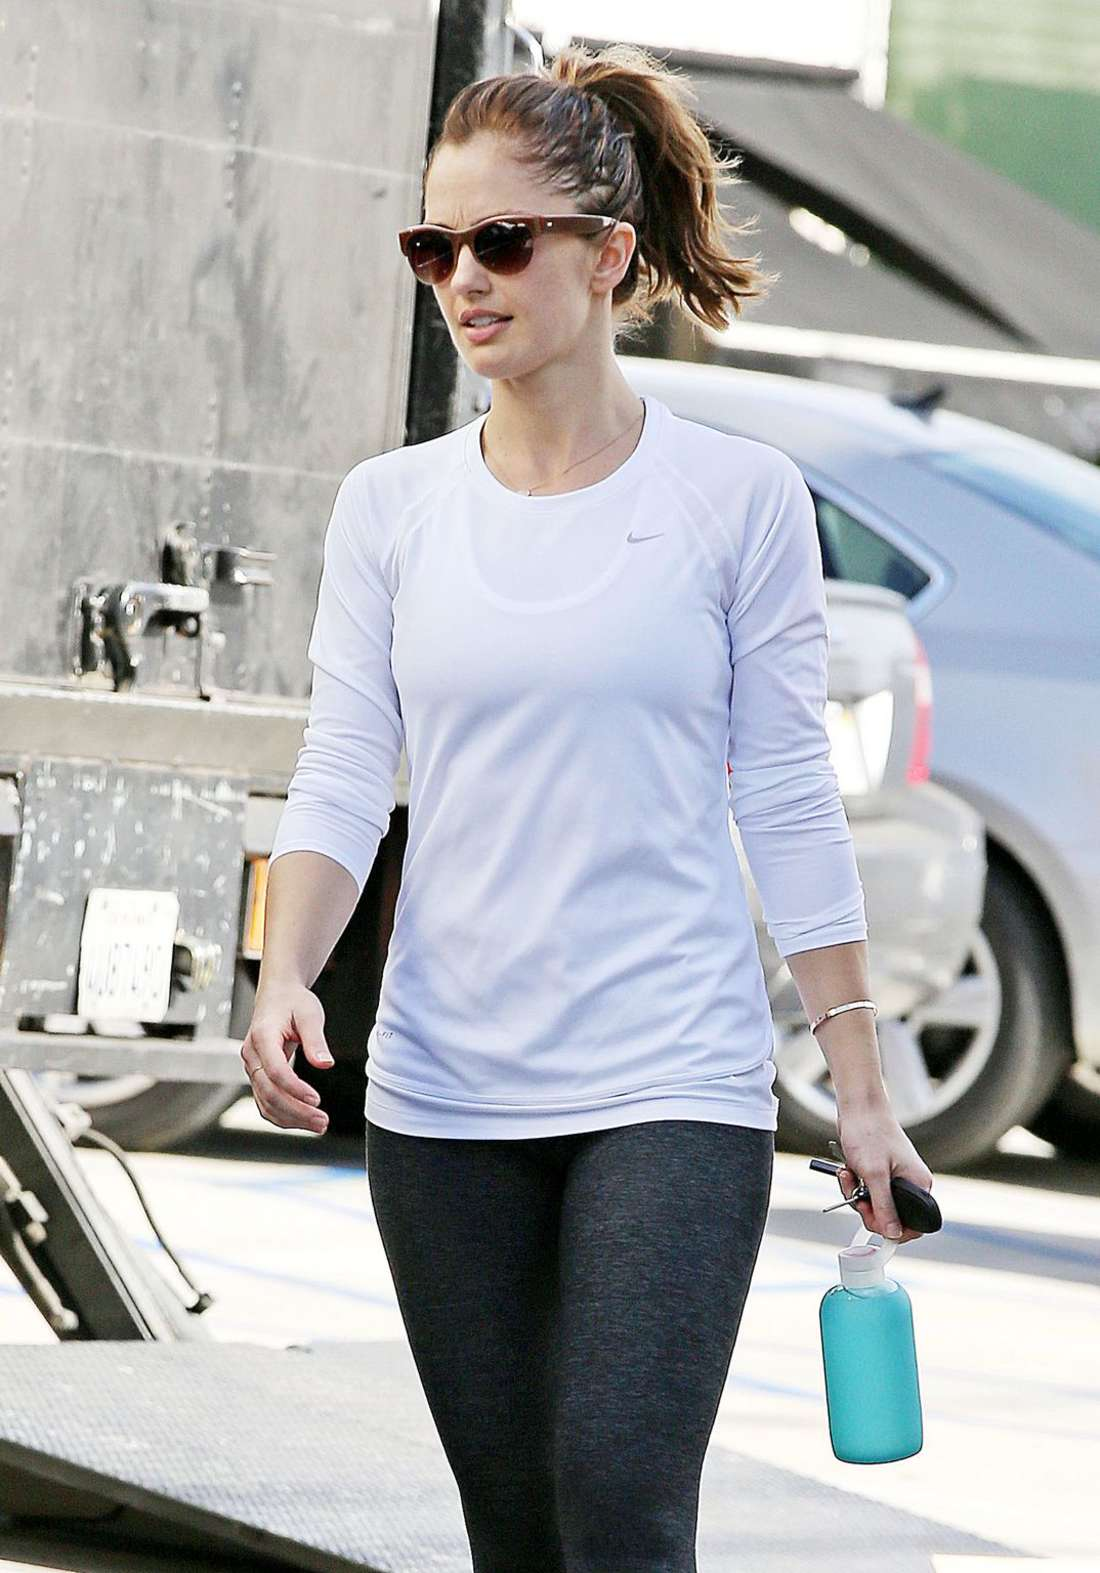 Minka Kelly in Tights at Gym in West Hollywood